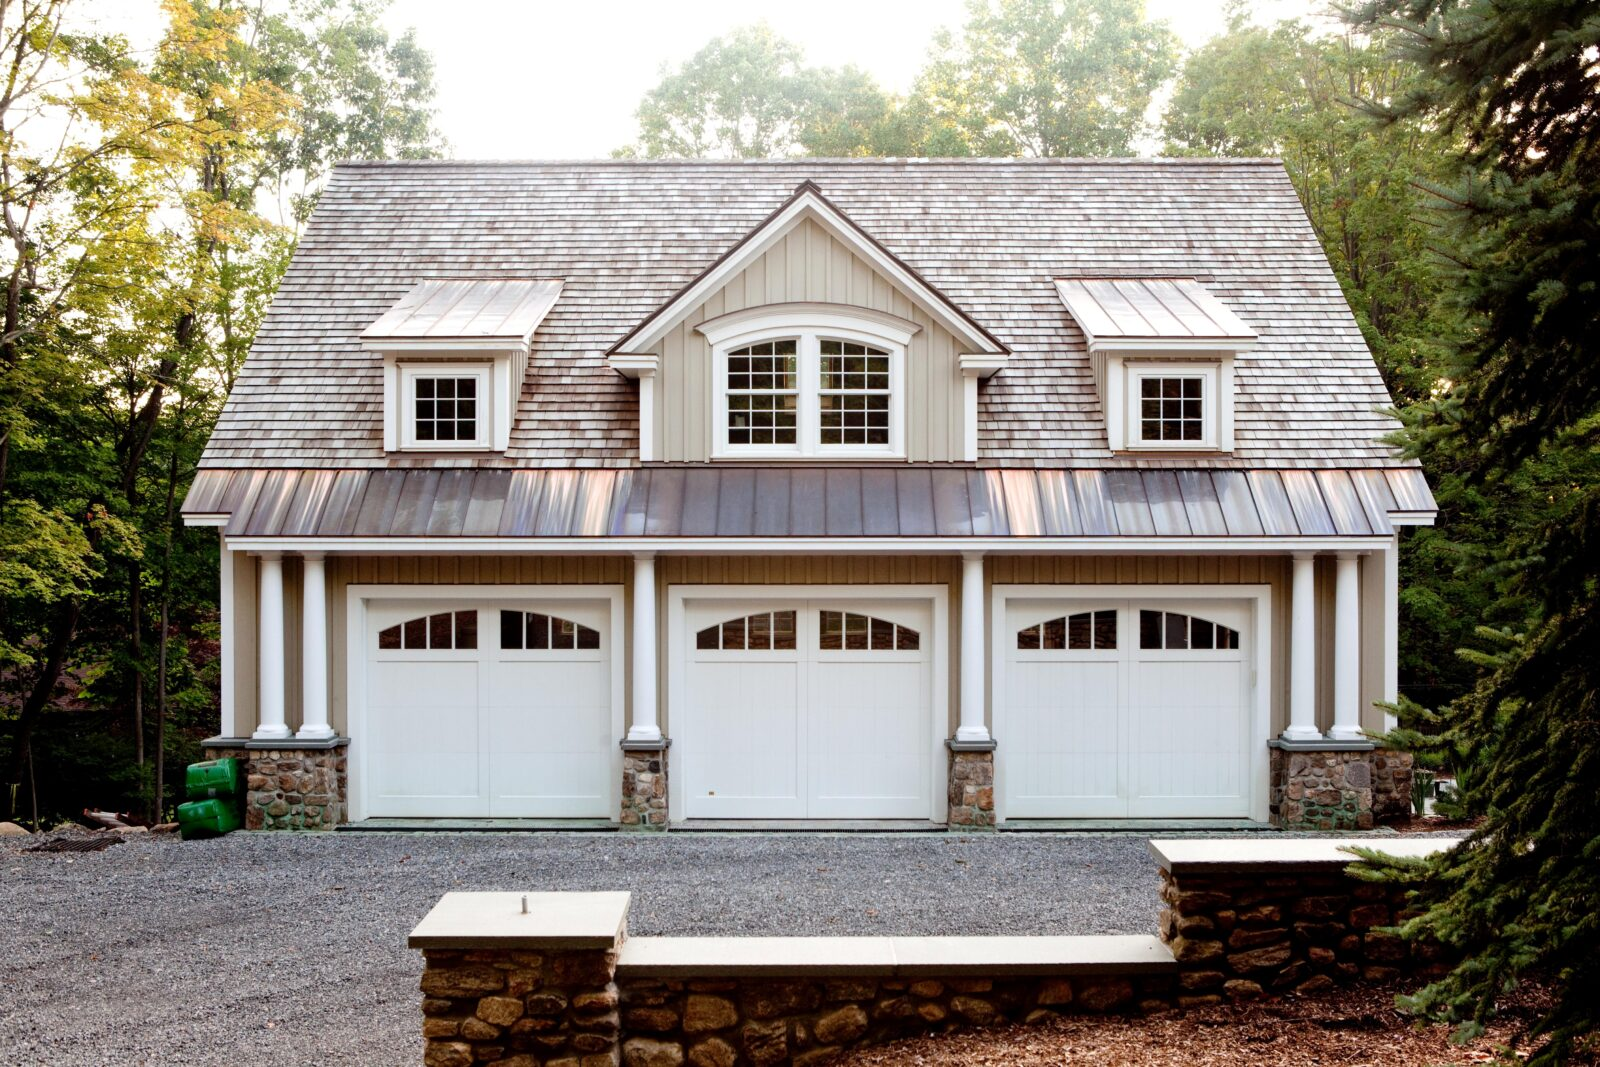 Barn carriage house joy studio design gallery best design for Carriage house floor plans